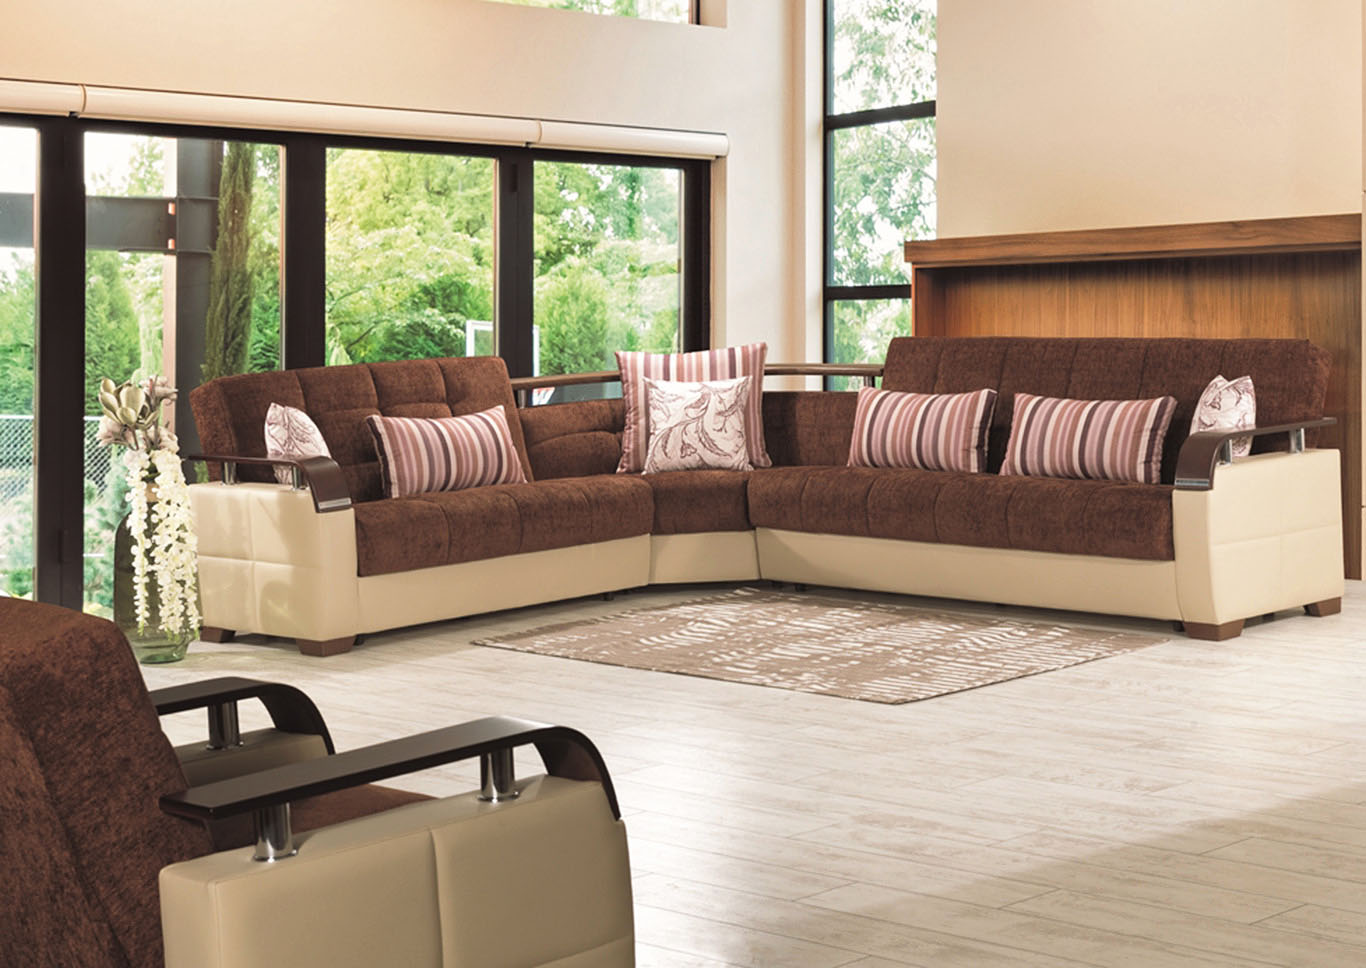 Karma Brown/Cream Sectional,CasaMode Functional Furniture